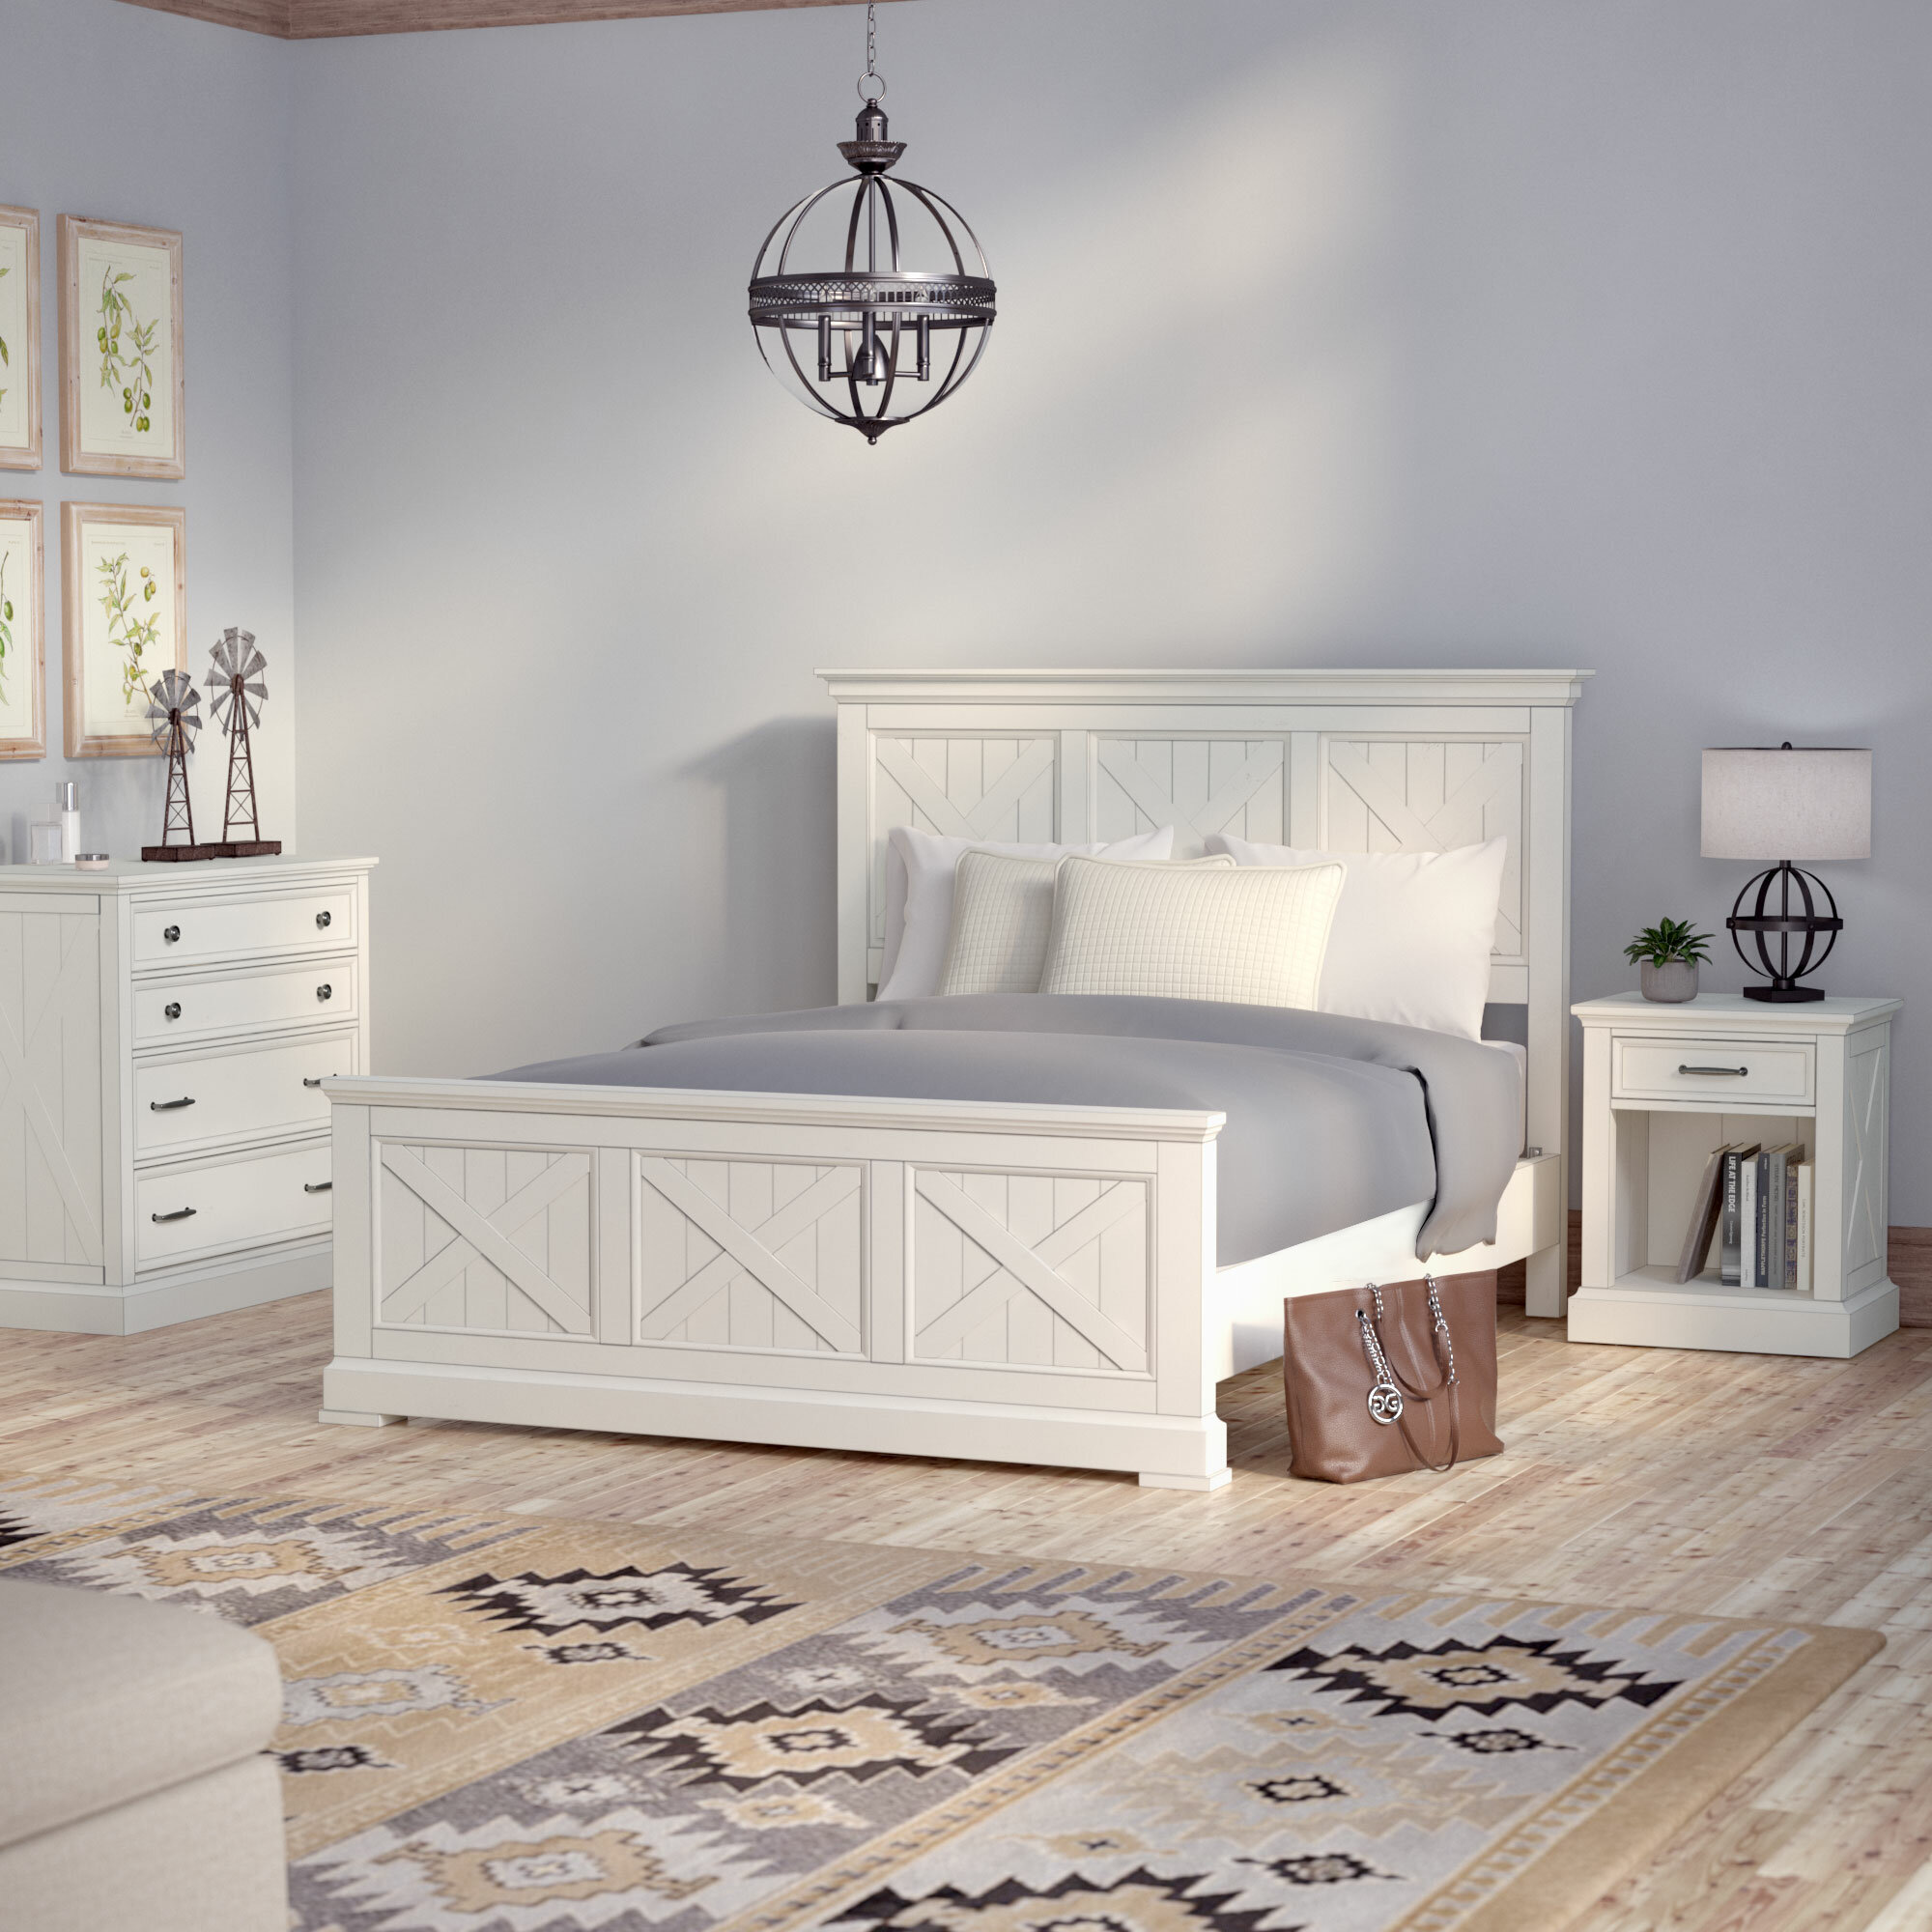 Laurel Foundry Modern Farmhouse Moravia Standard 3 Piece Bedroom Set Wayfair